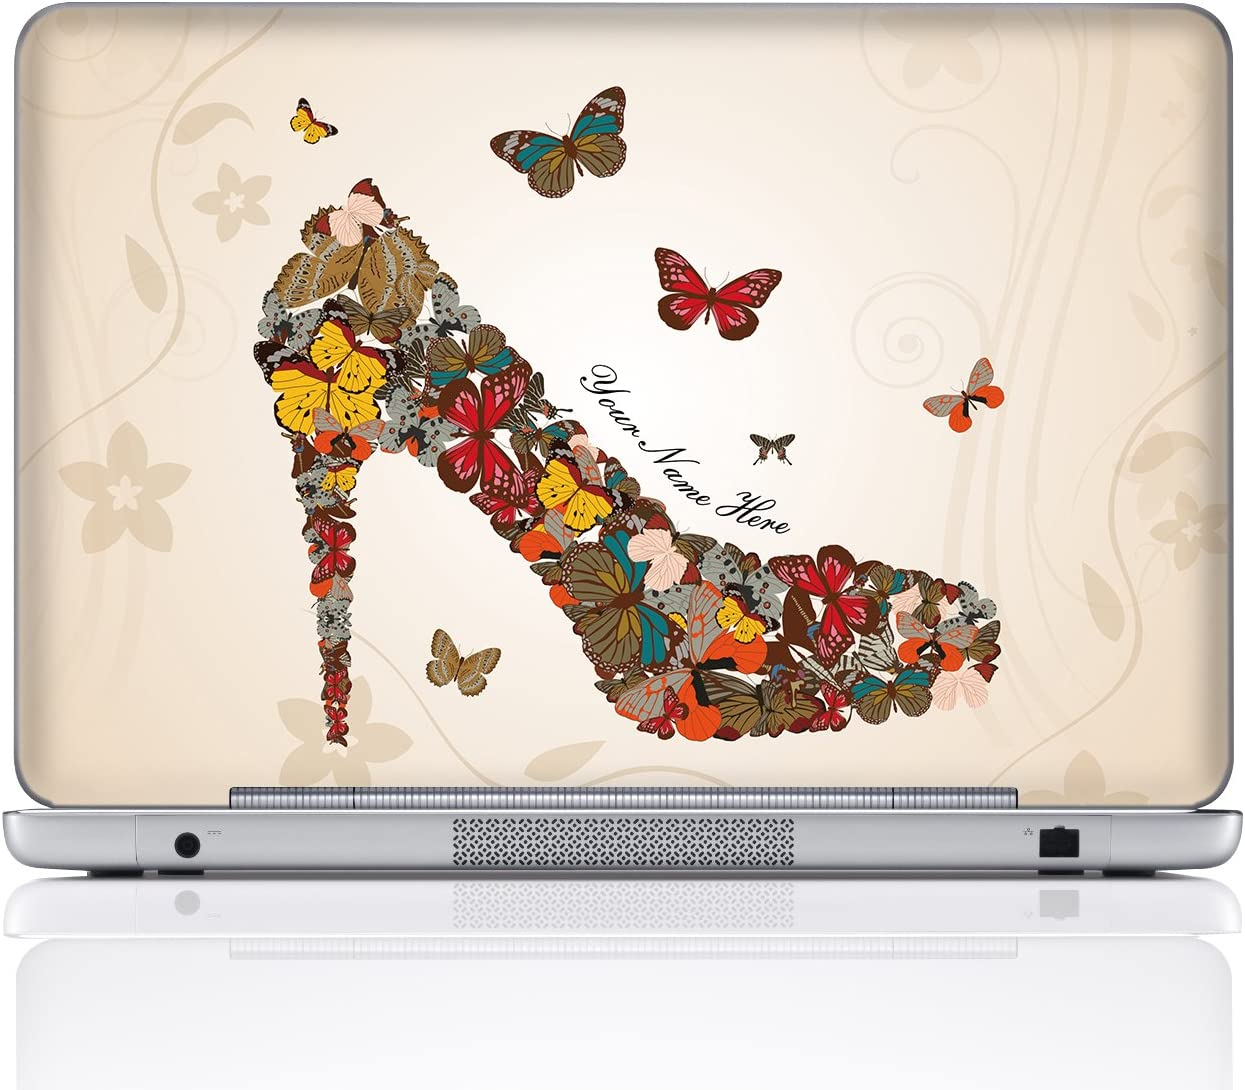 Meffort Inc Personalized Laptop Notebook Notebook Skin Sticker Cover Art Decal, Customize Your Name (17 Inch, Butterfly High Heel)